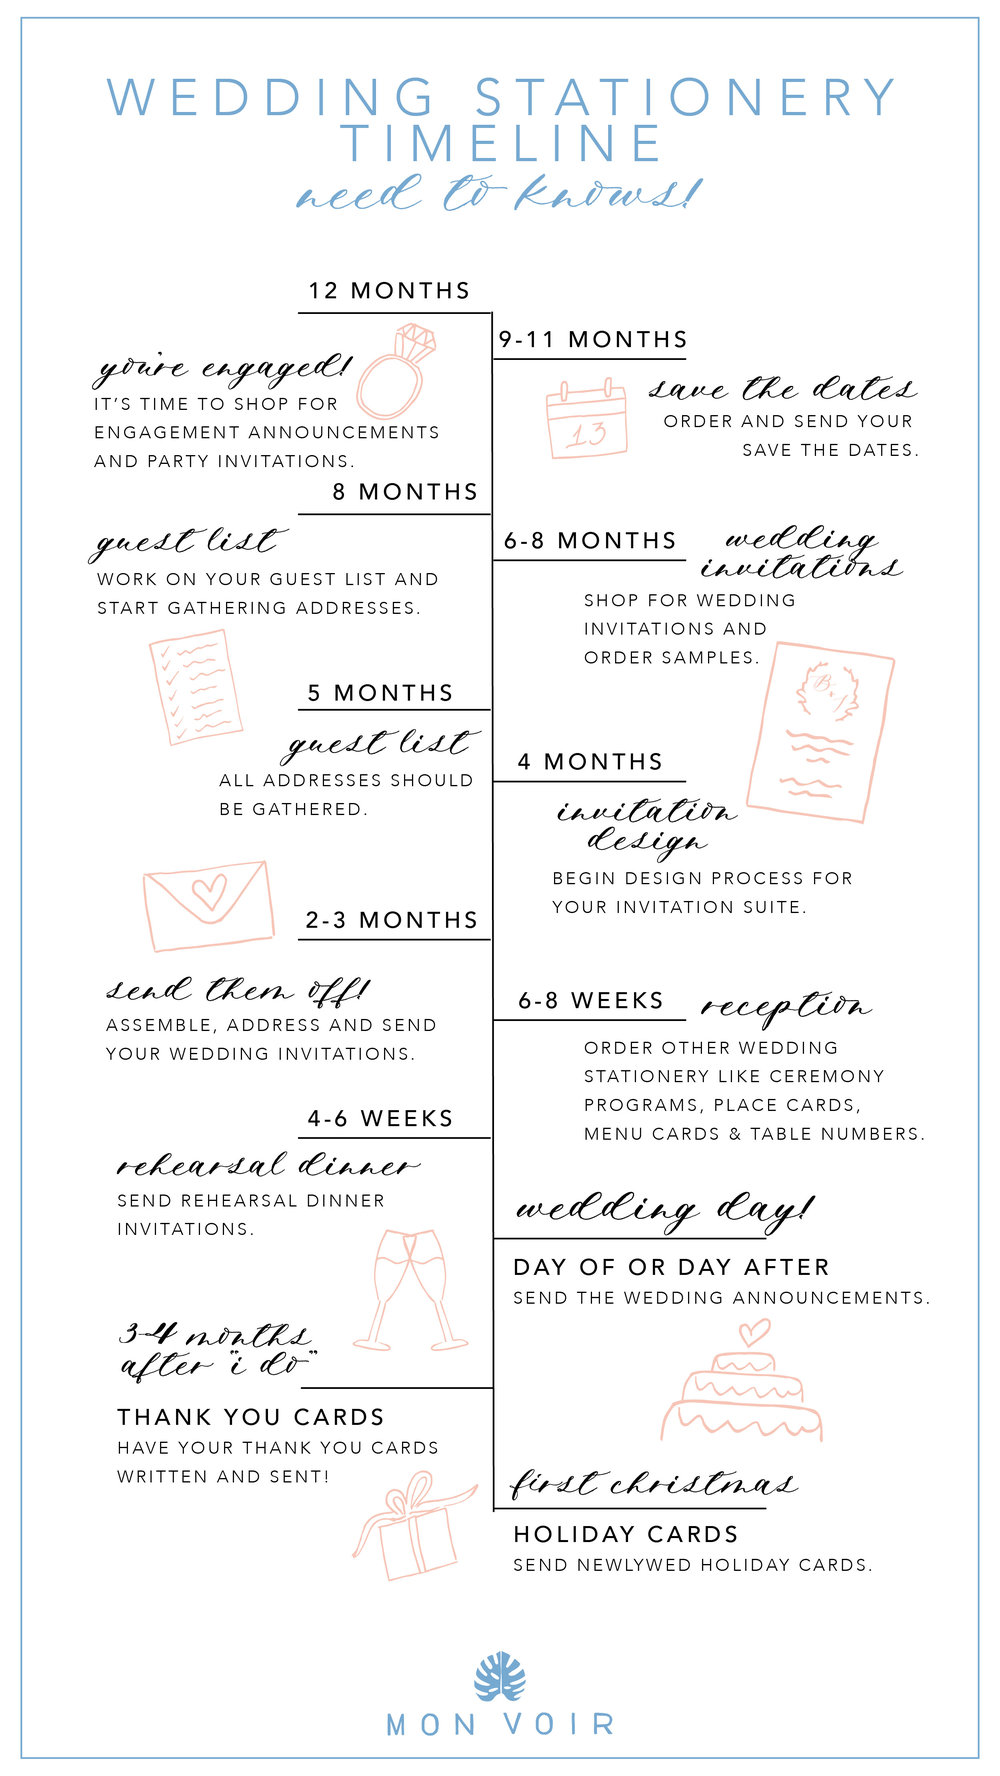 WEDDING STATIONERY TIMELINE — Mon Voir